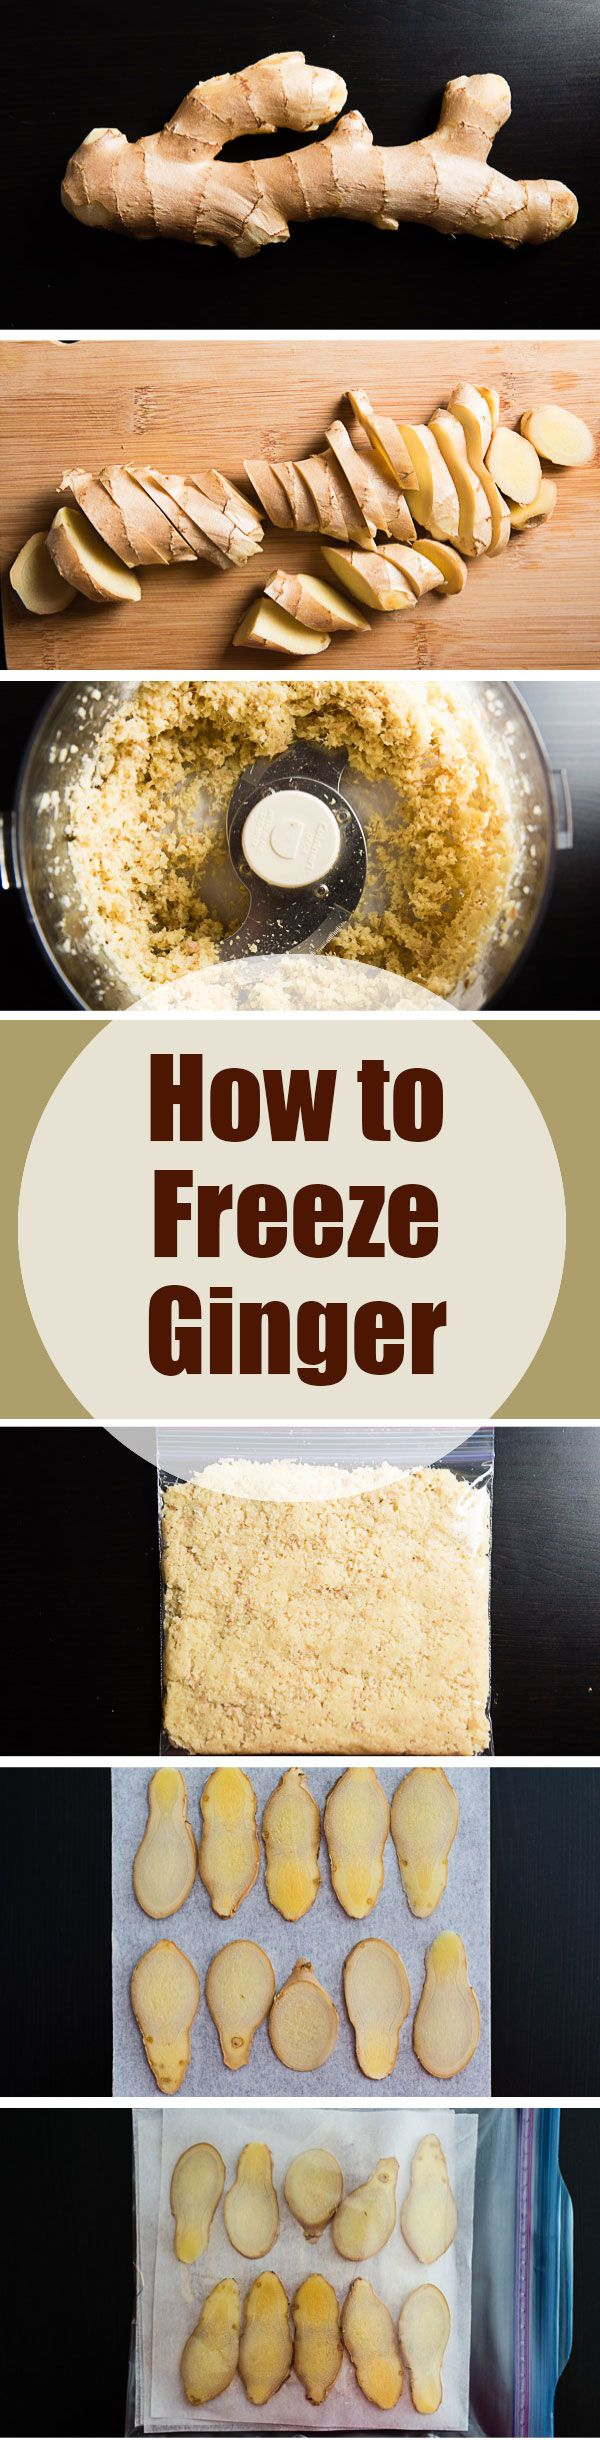 How to Freeze Ginger | omnivorescookbook.com